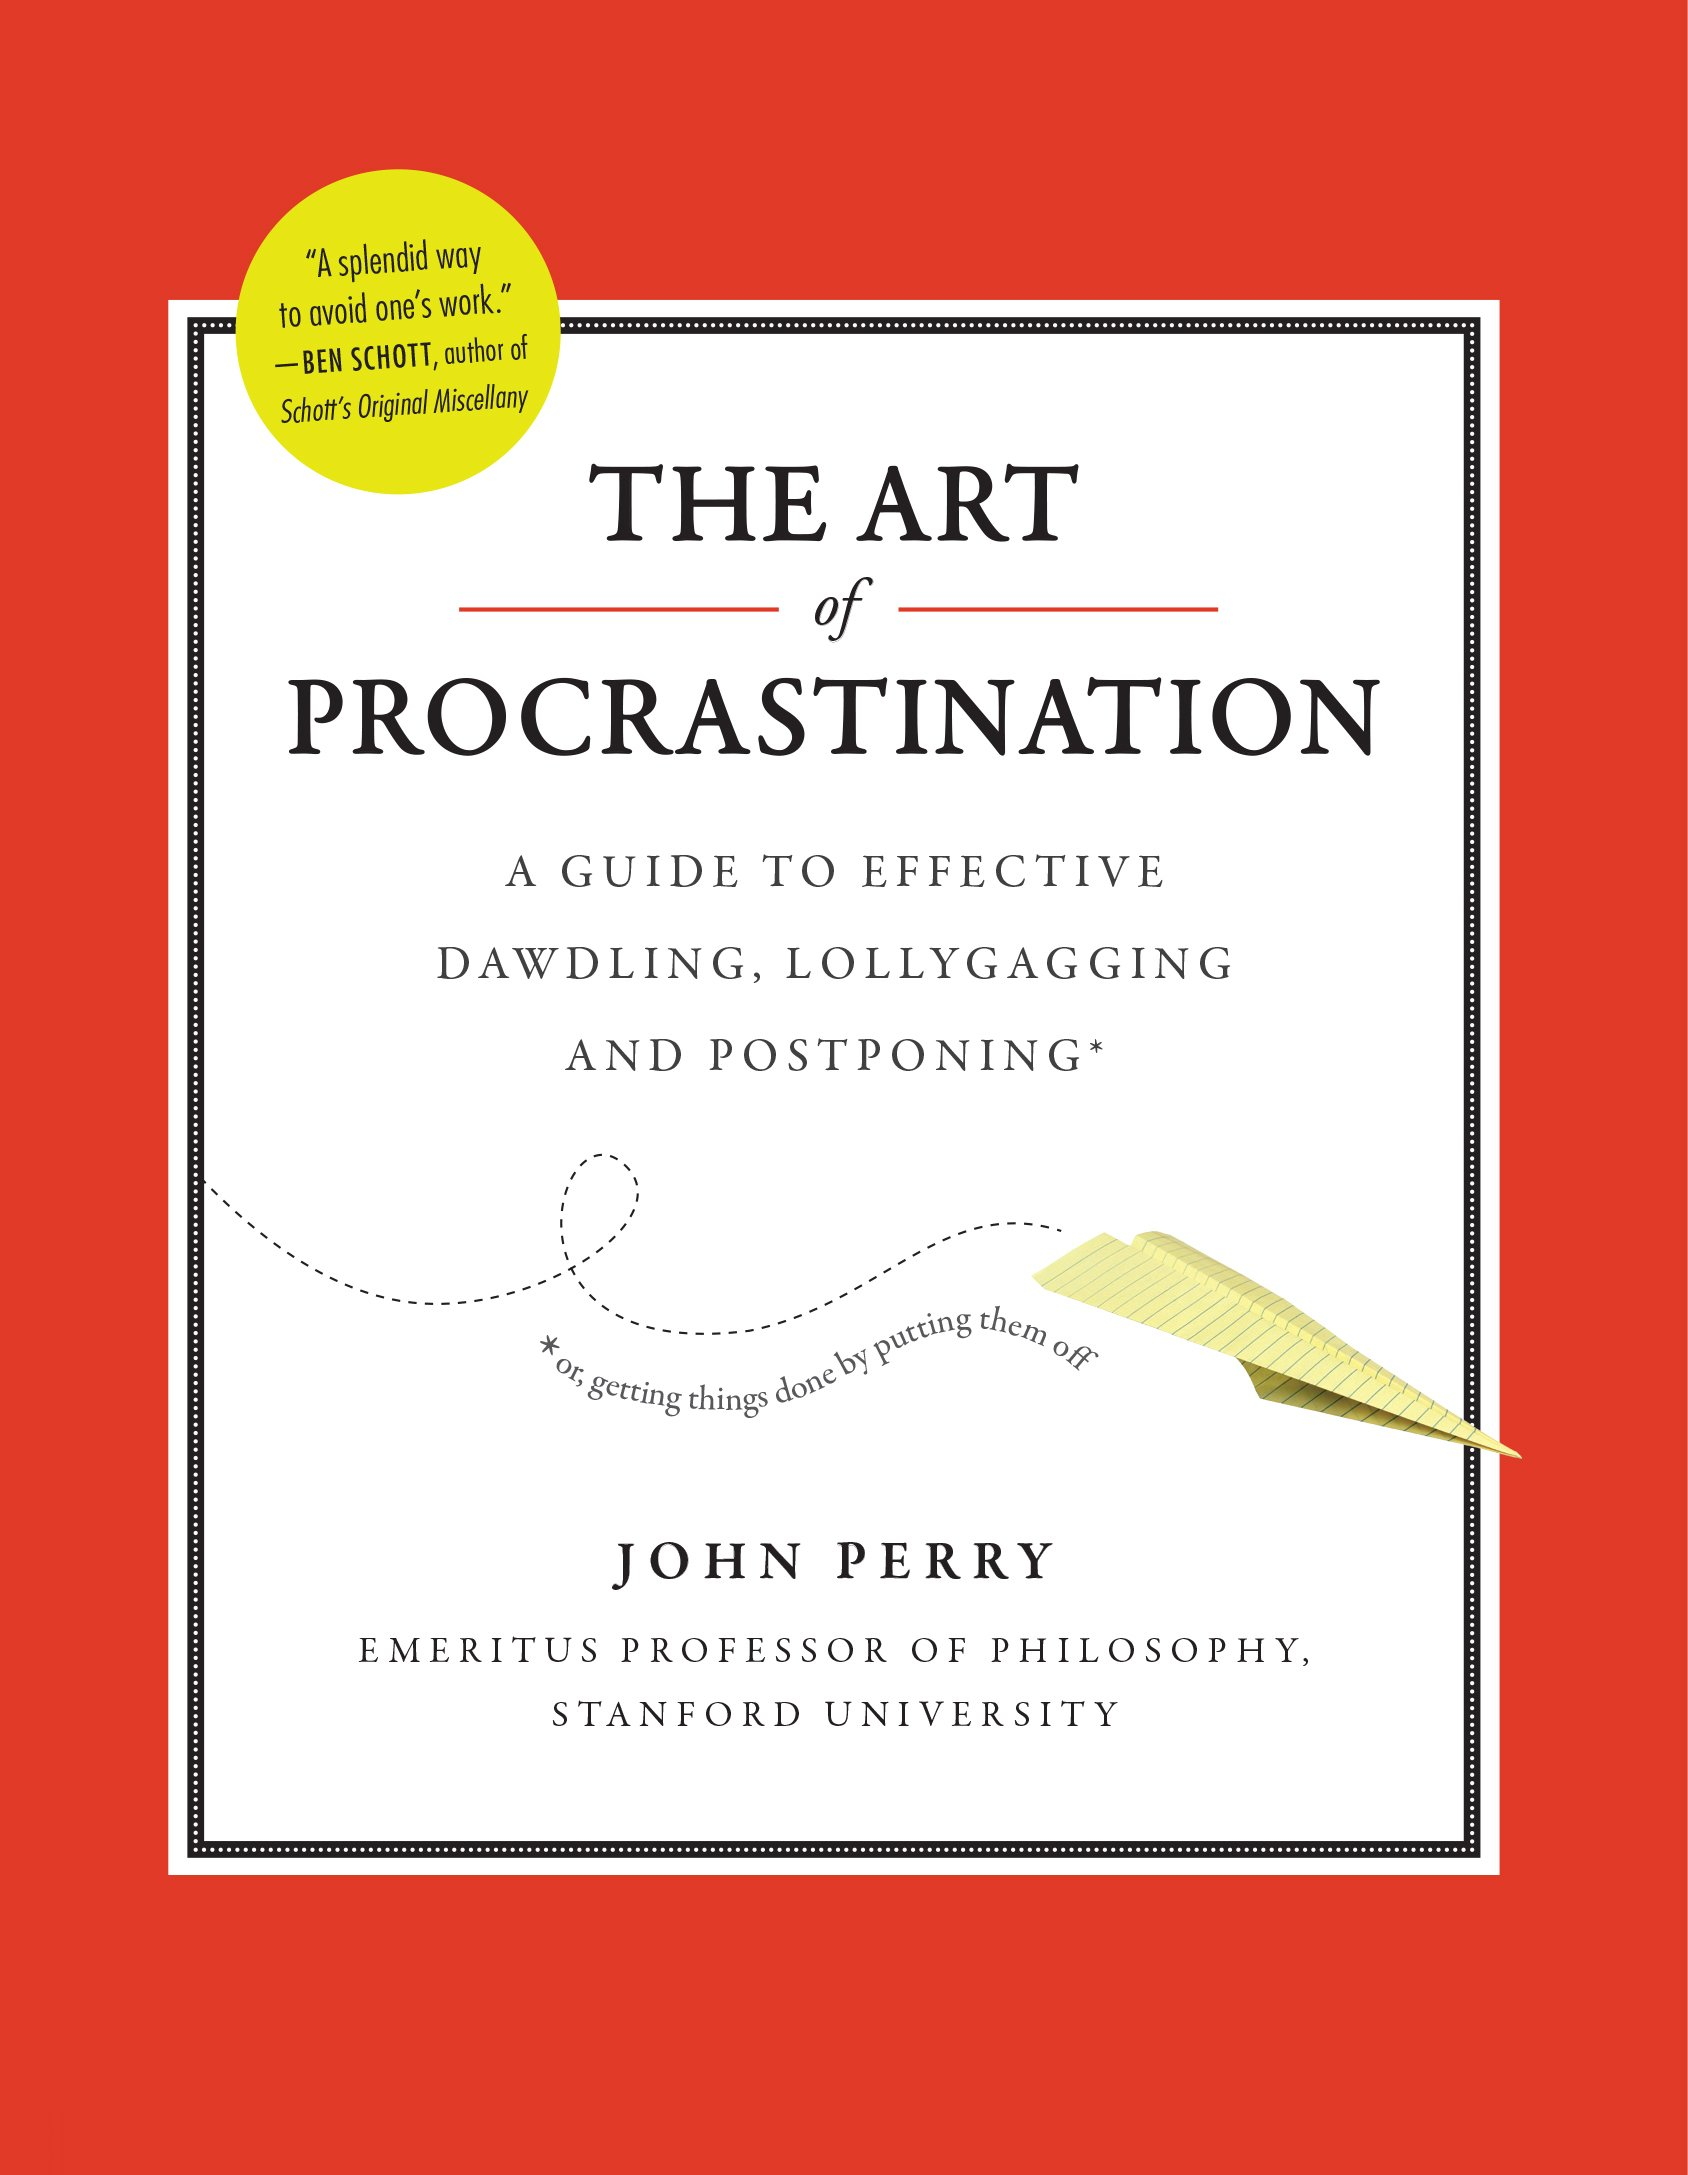 Environmental Science Essays The Art Of Procrastination A Guide To Effective Dawdling Lollygagging And  Postponing John Perry  Amazoncom Books College Essays On Leadership also Protect The Environment Essay The Art Of Procrastination A Guide To Effective Dawdling  Edit Essays